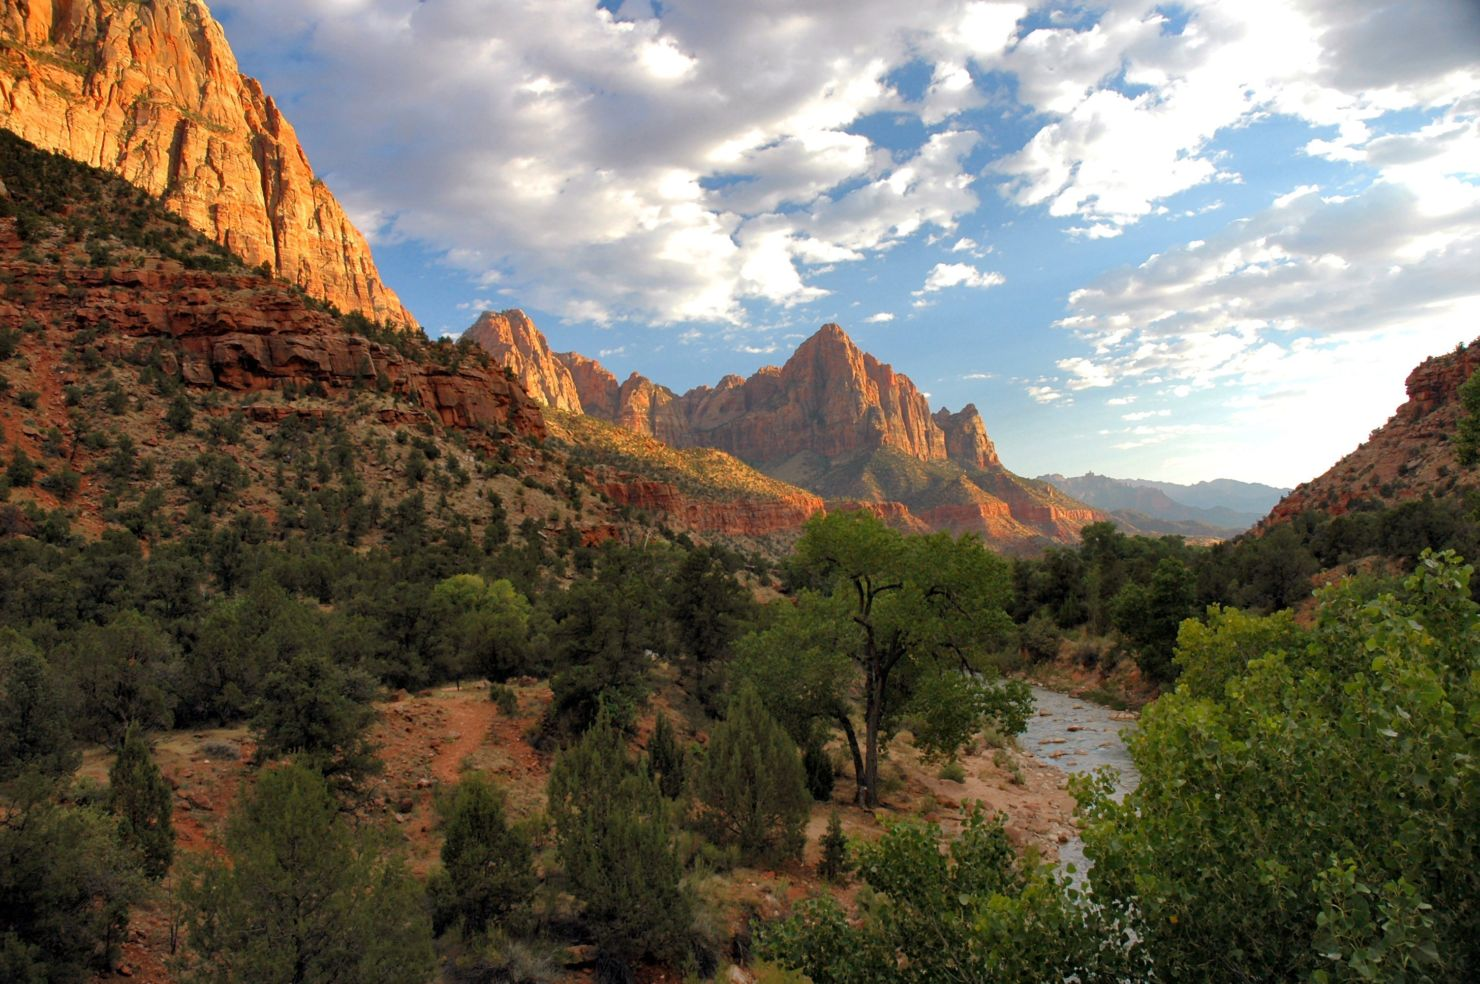 25 great American parks every traveler should see